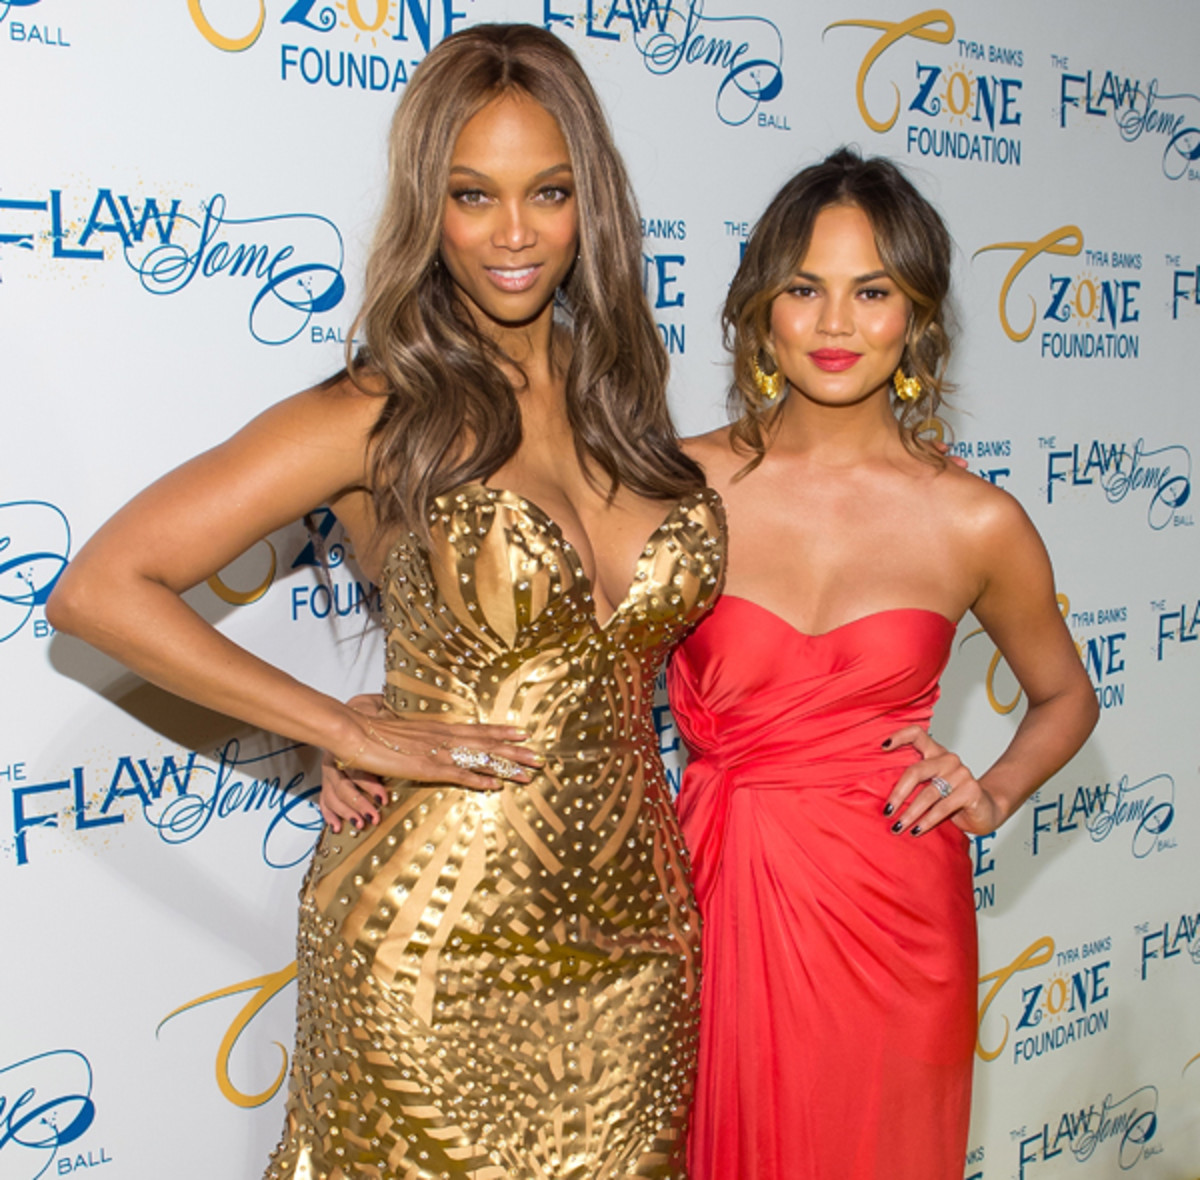 Tyra Banks and Chrissy Teigen :: WireImage